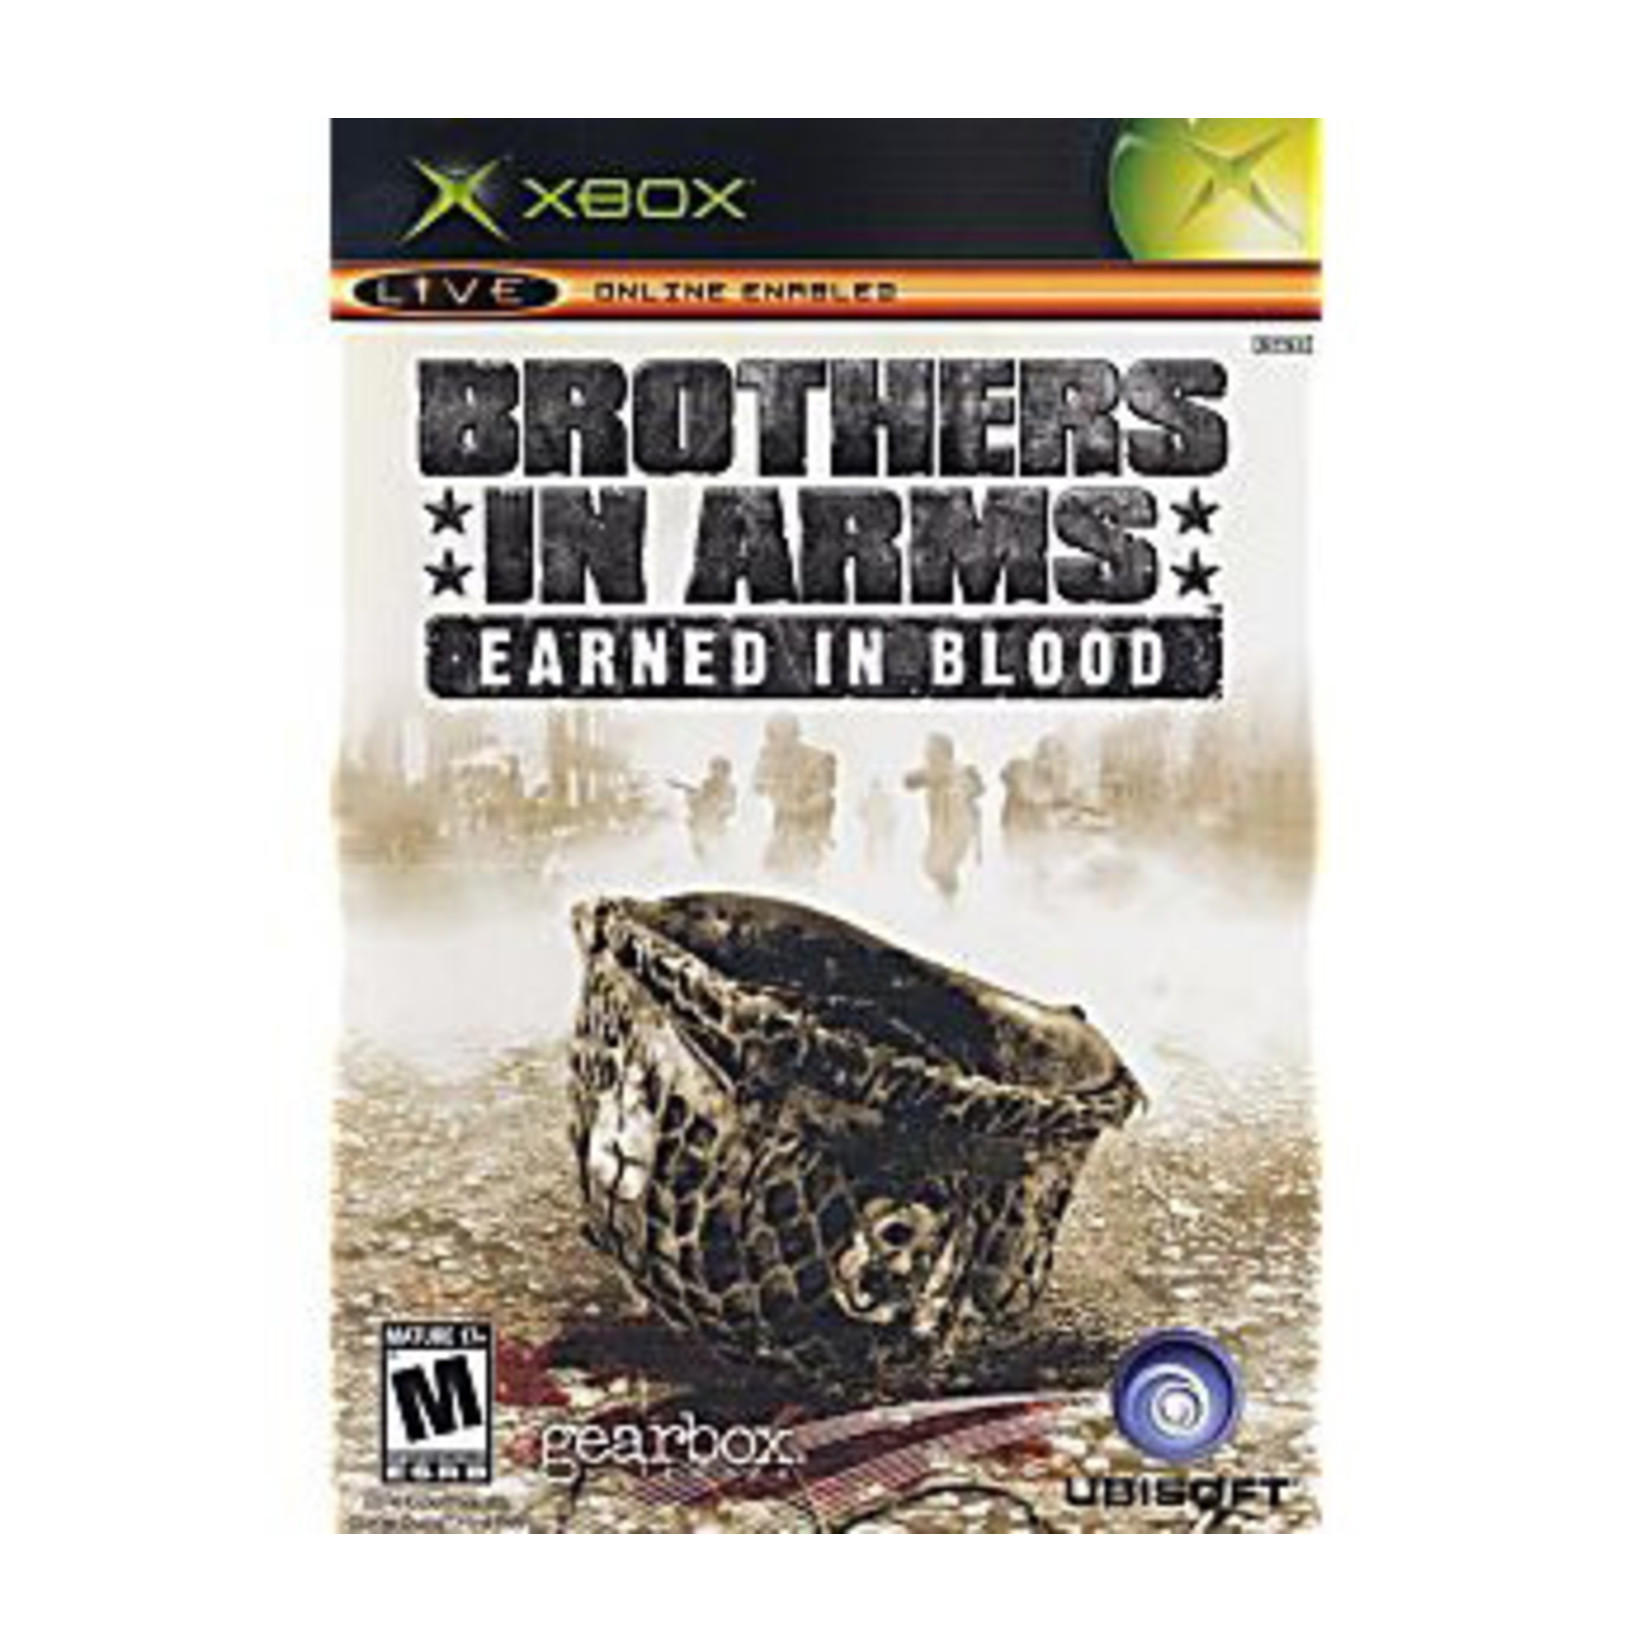 XBU-BROTHERS IN ARMS EARNED IN BLOOD